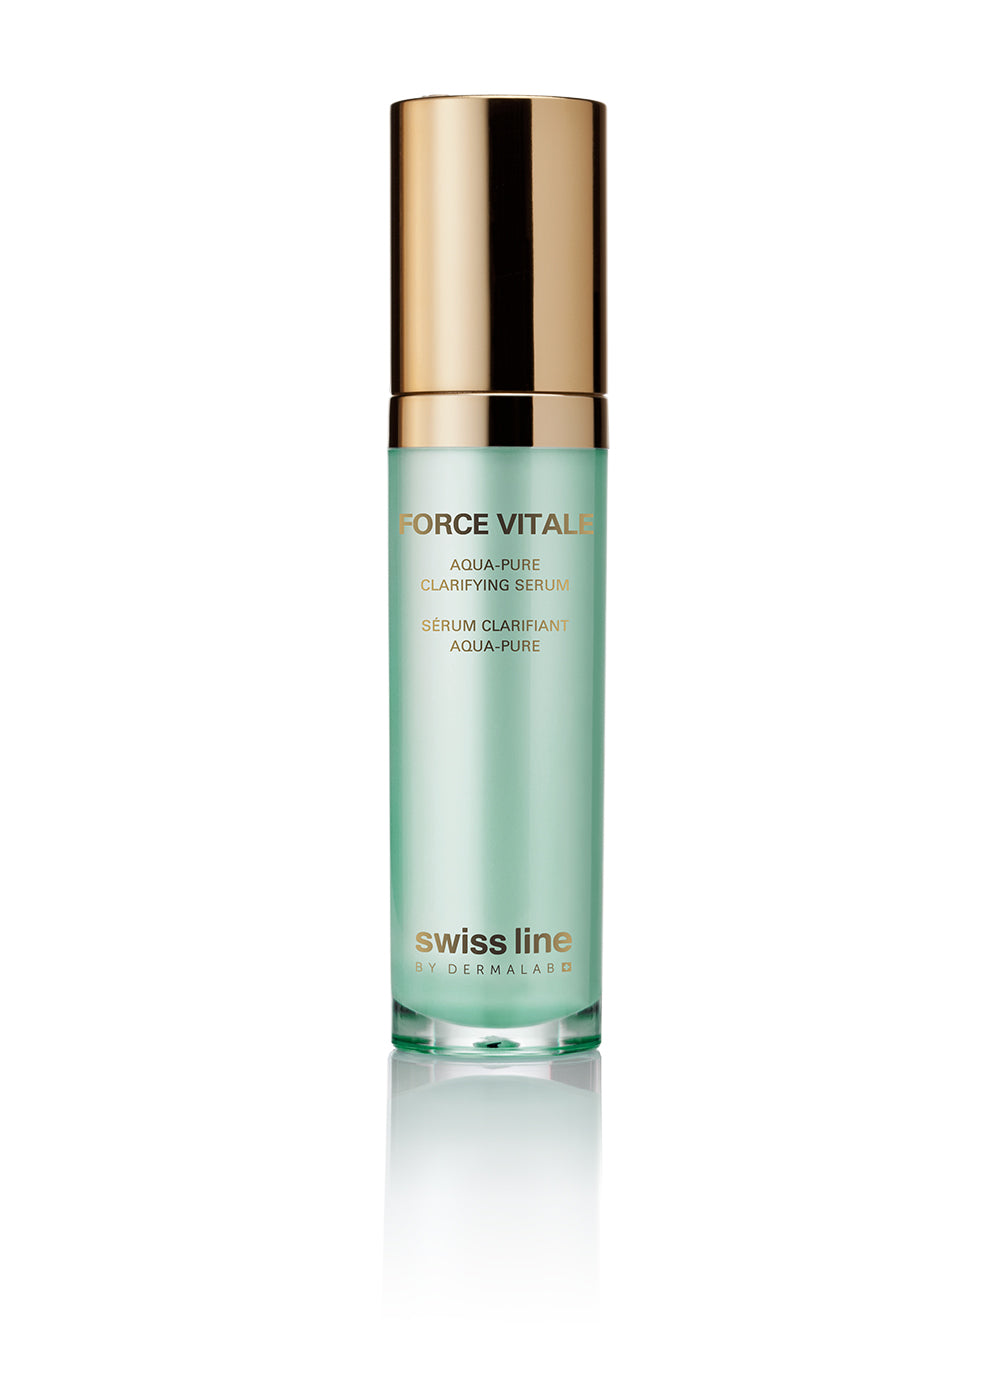 Swiss Line Force Vitale Aqua-Pure Clarifying Serum